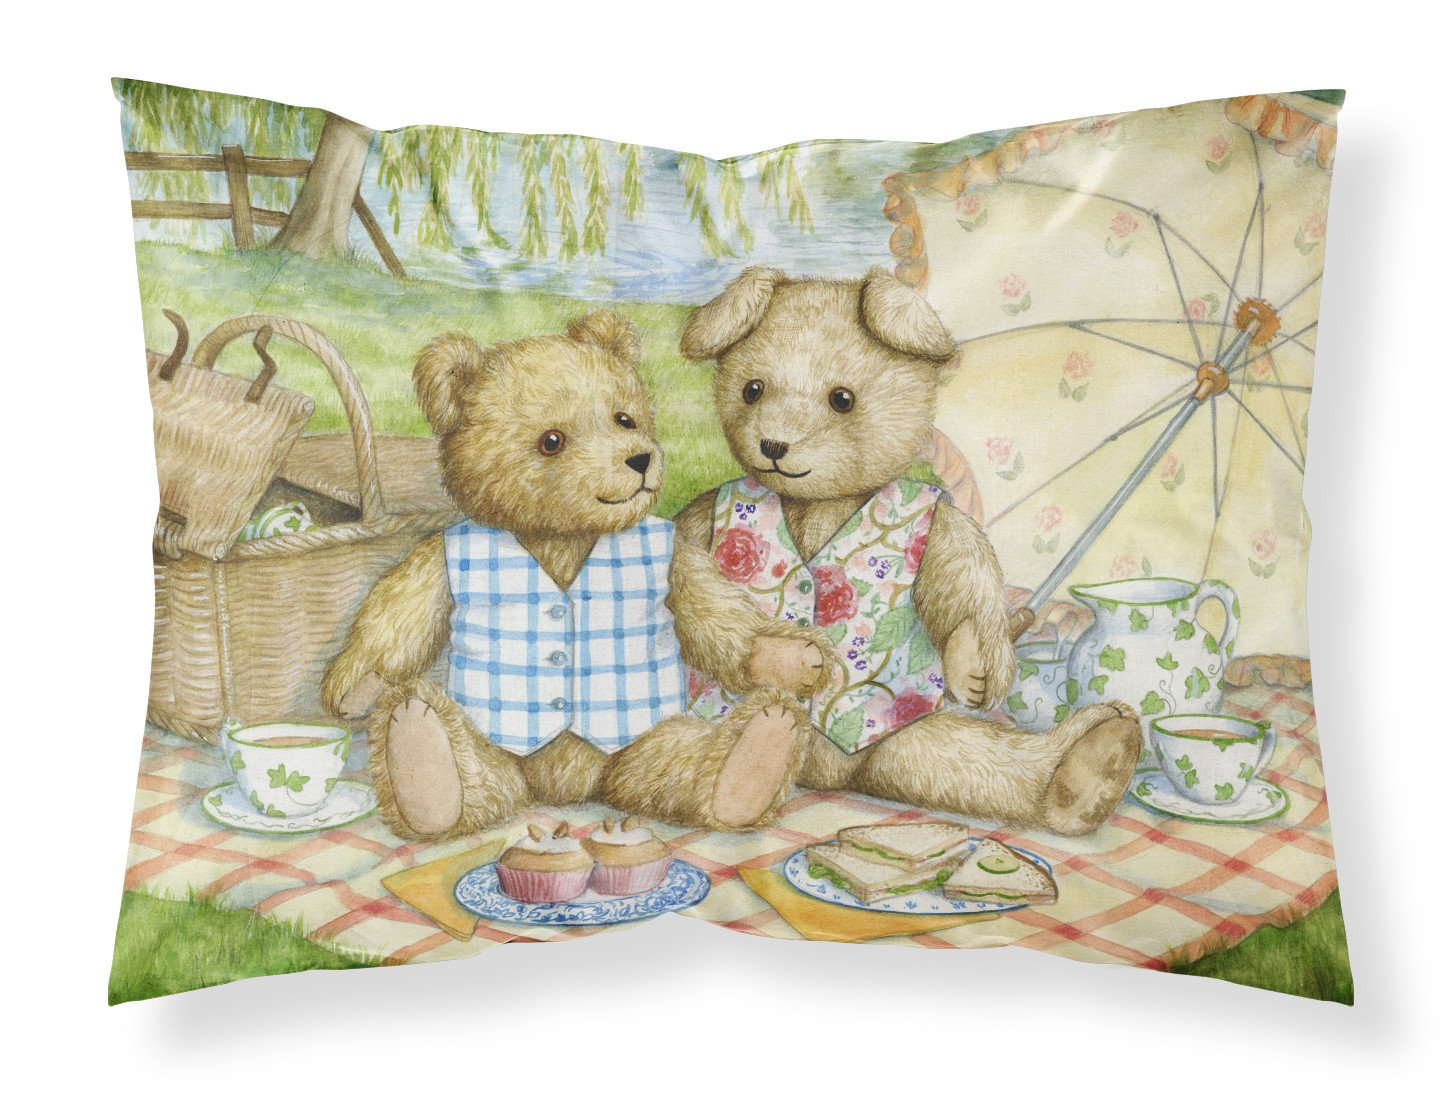 Buy this Summertime Teddy Bears Picnic Fabric Standard Pillowcase CDCO0308PILLOWCASE